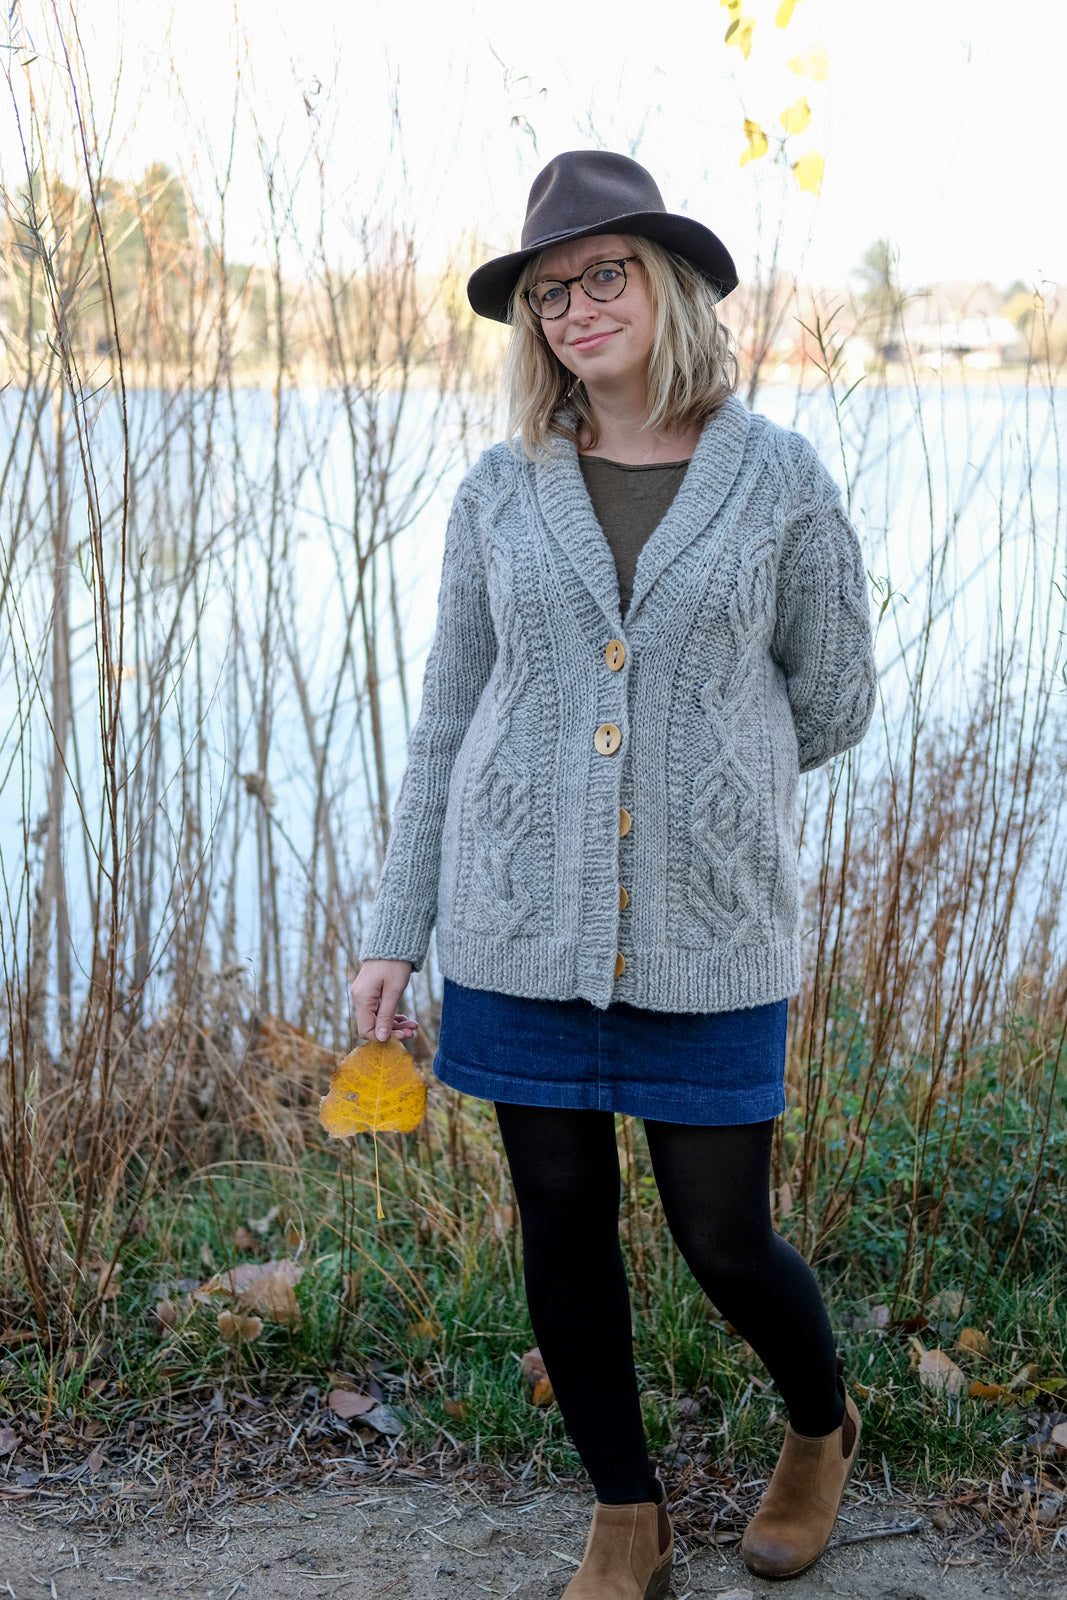 Amber by the lake holding a leaf in her Cabled Junegrass Sweater